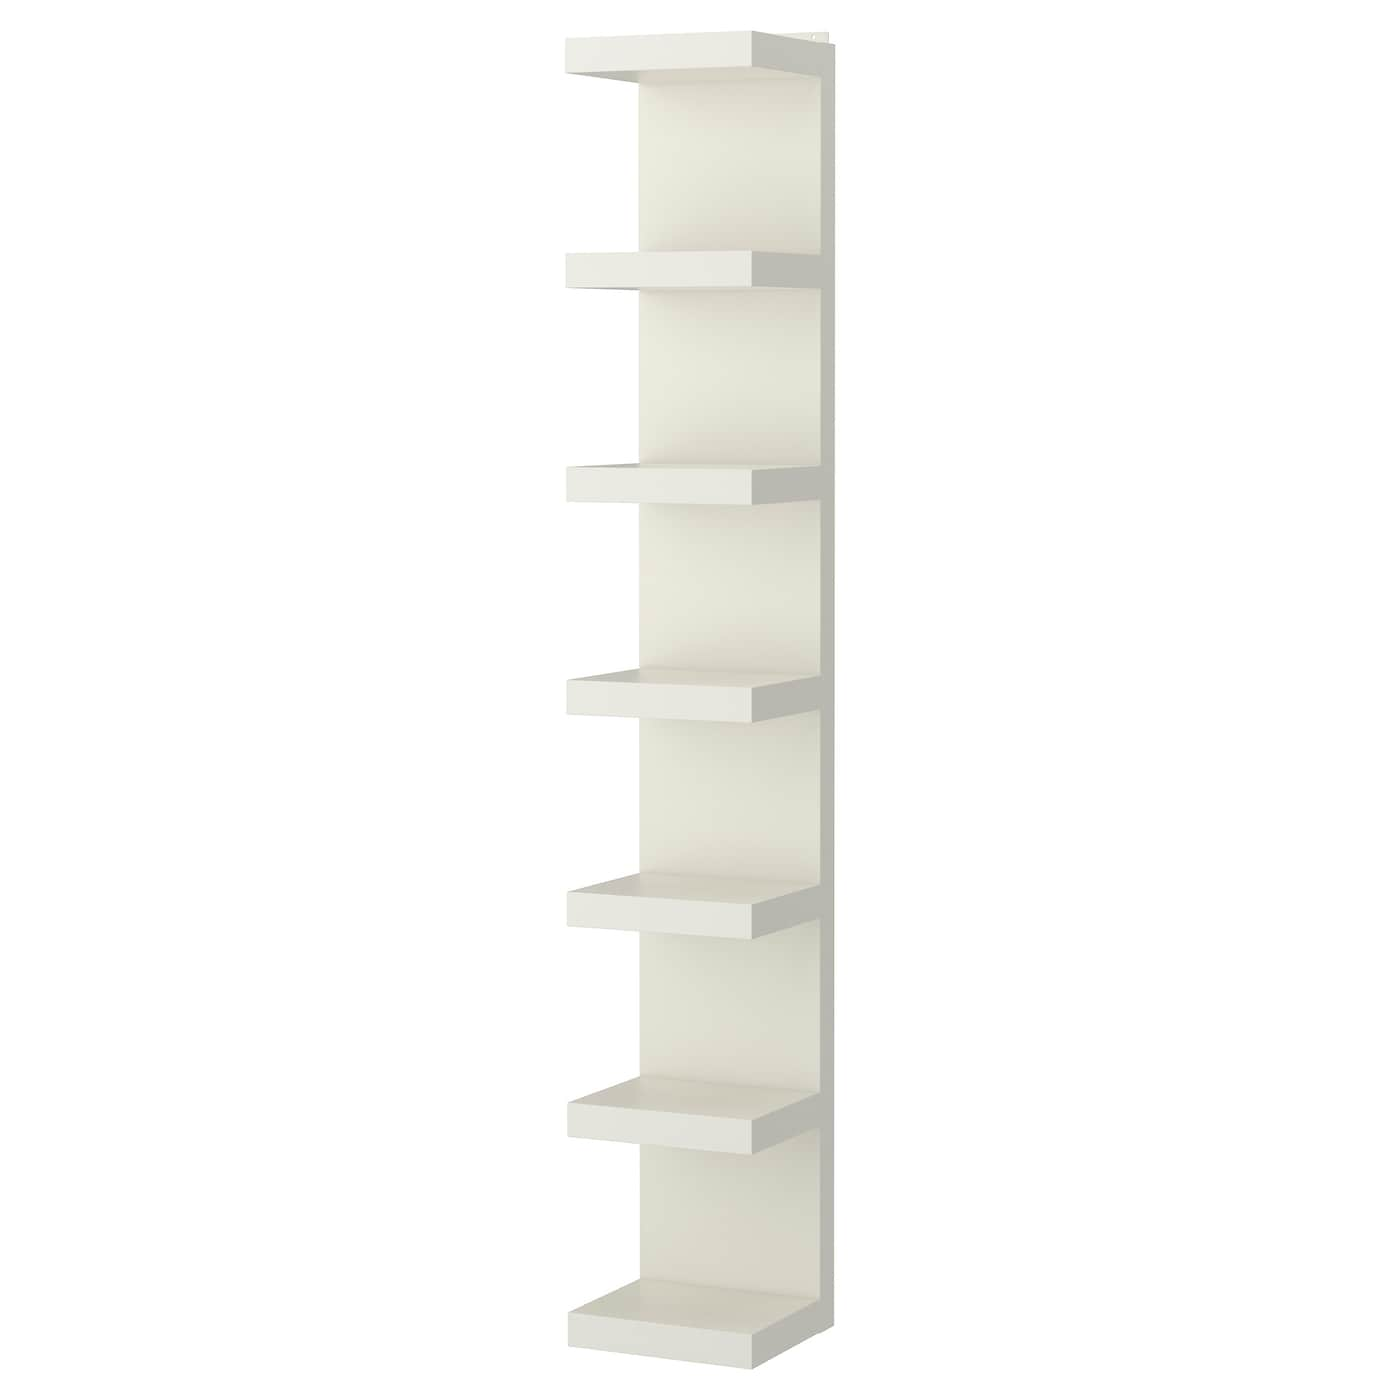 ikea lack shelf lack wall shelf unit white 30 x 190 cm ikea 11373